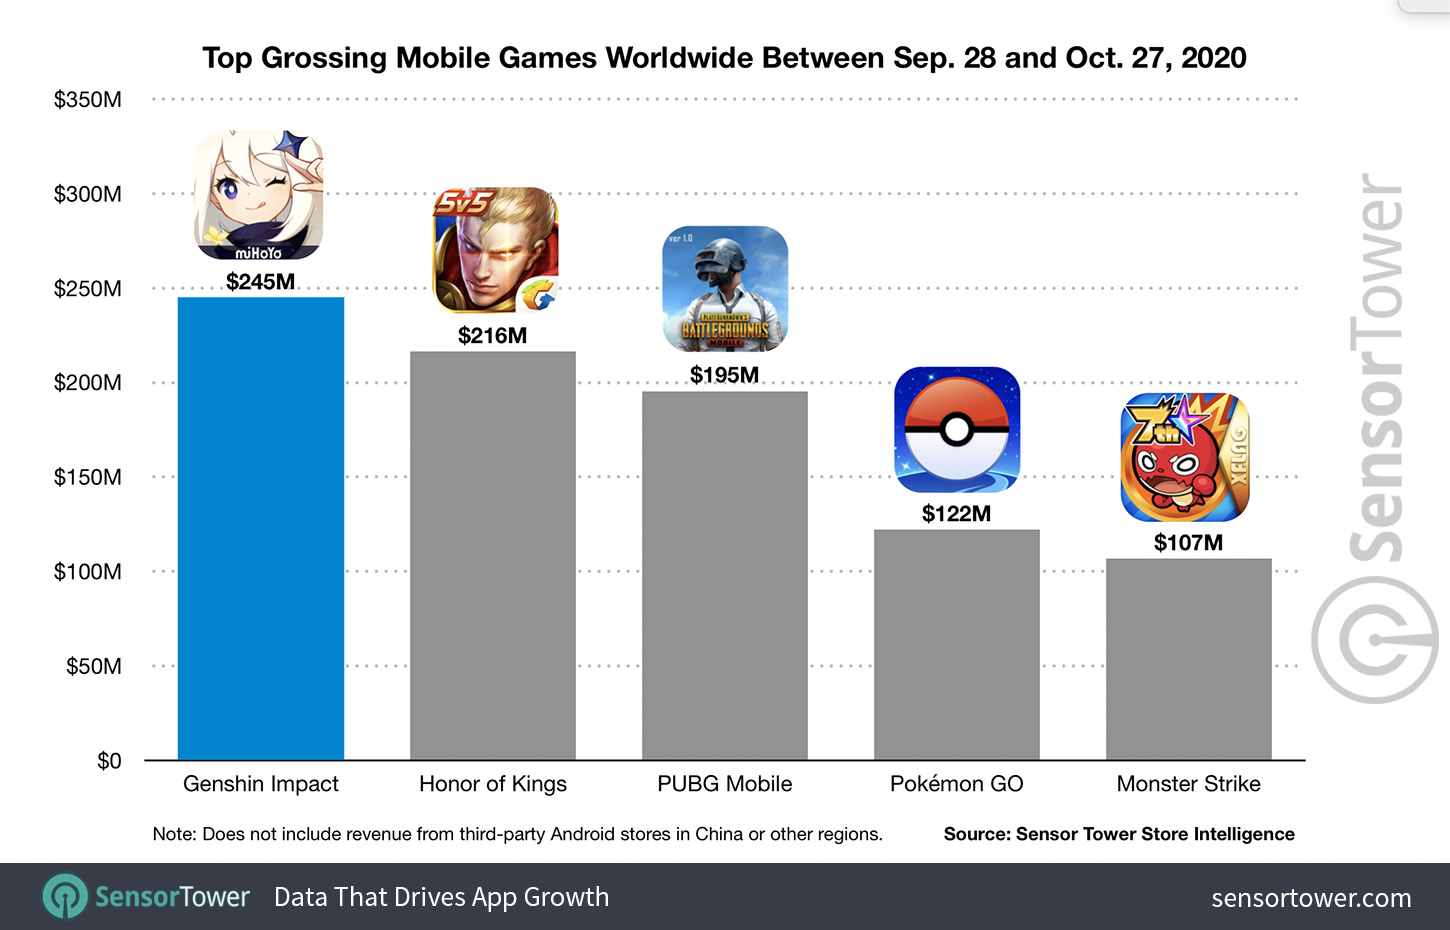 Genshin Impact Hits Nearly 250 Million In Its First Month Making It One Of The Largest Mobile Game Launches Ever